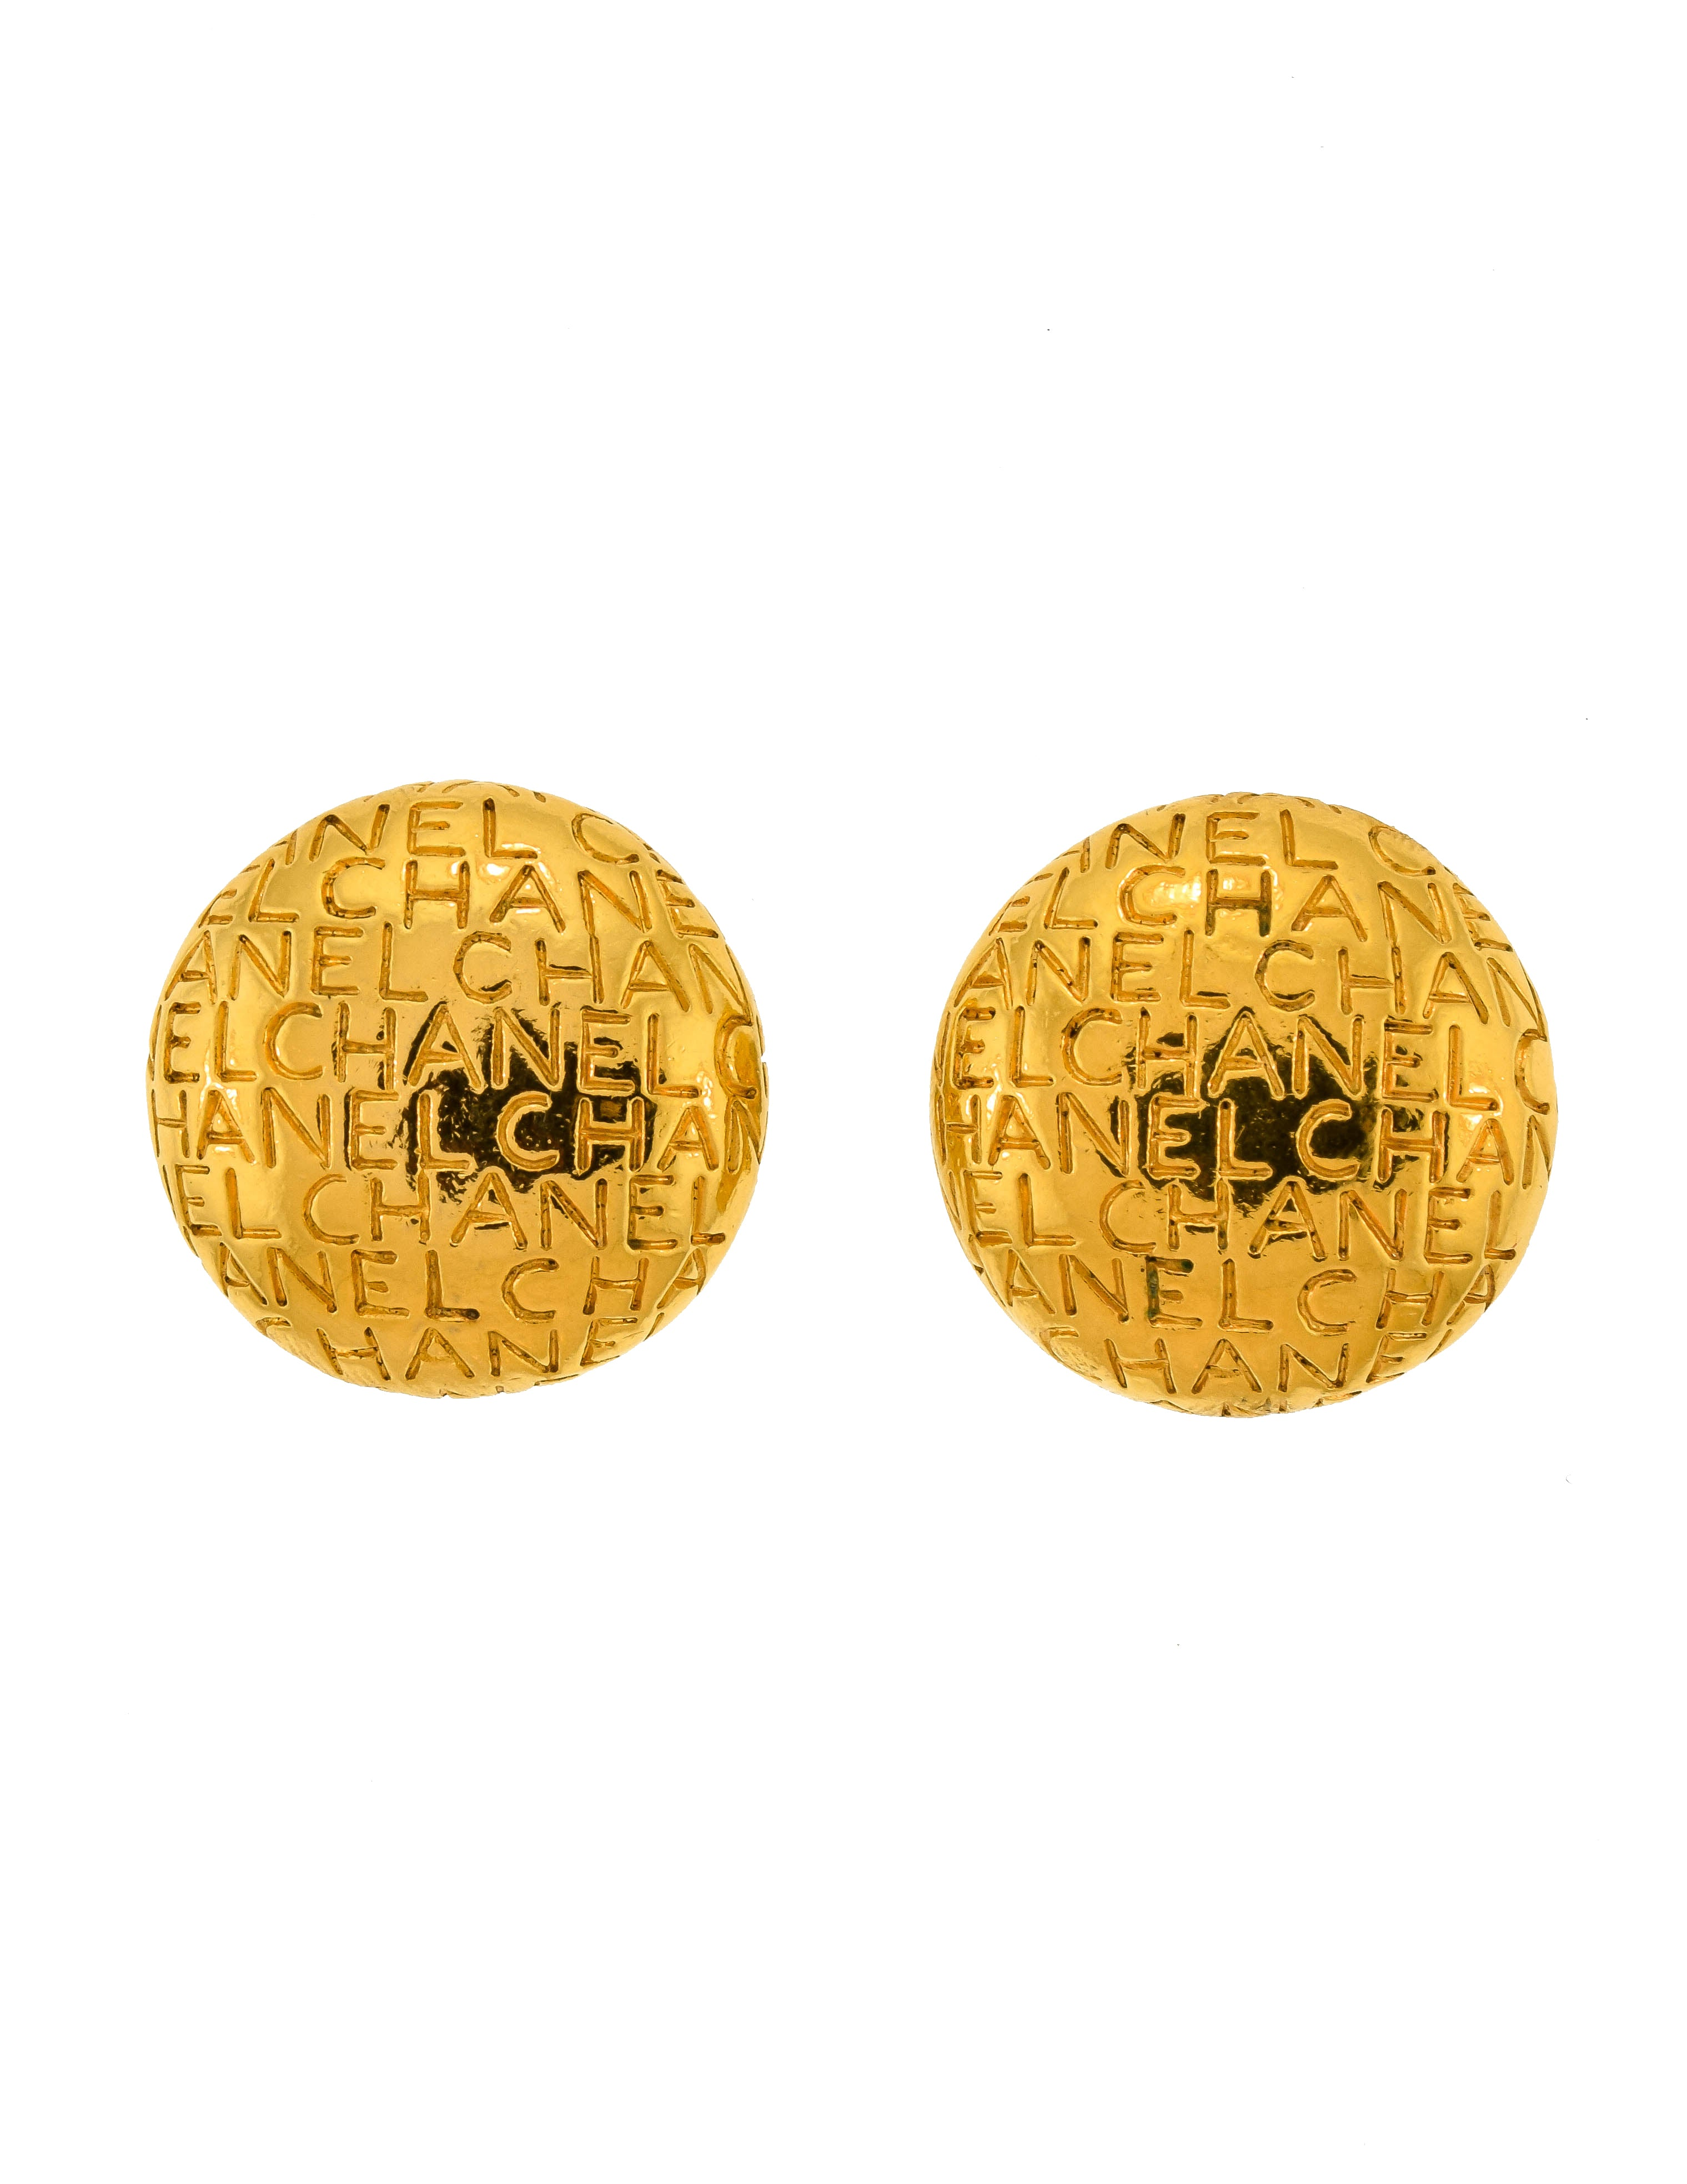 Chanel Vintage Gold Engraved Repeating Script Earrings